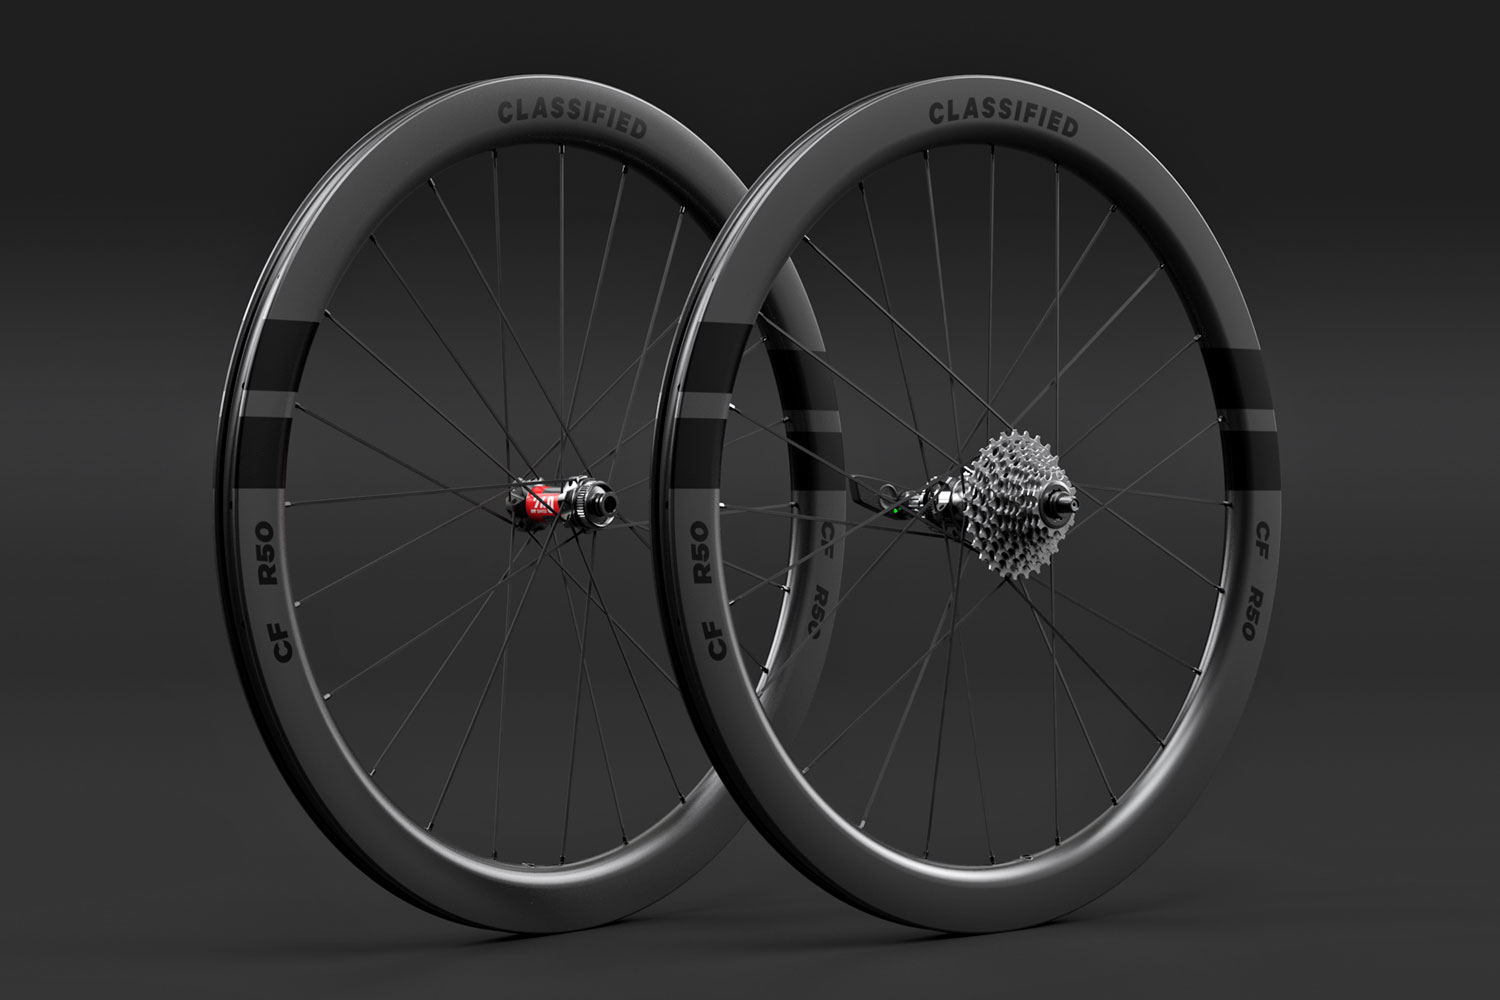 Classified Carbon Wheelsets, gravel & all-road wheels with wireless 2x internal gear hub built-in,50mm aero road set